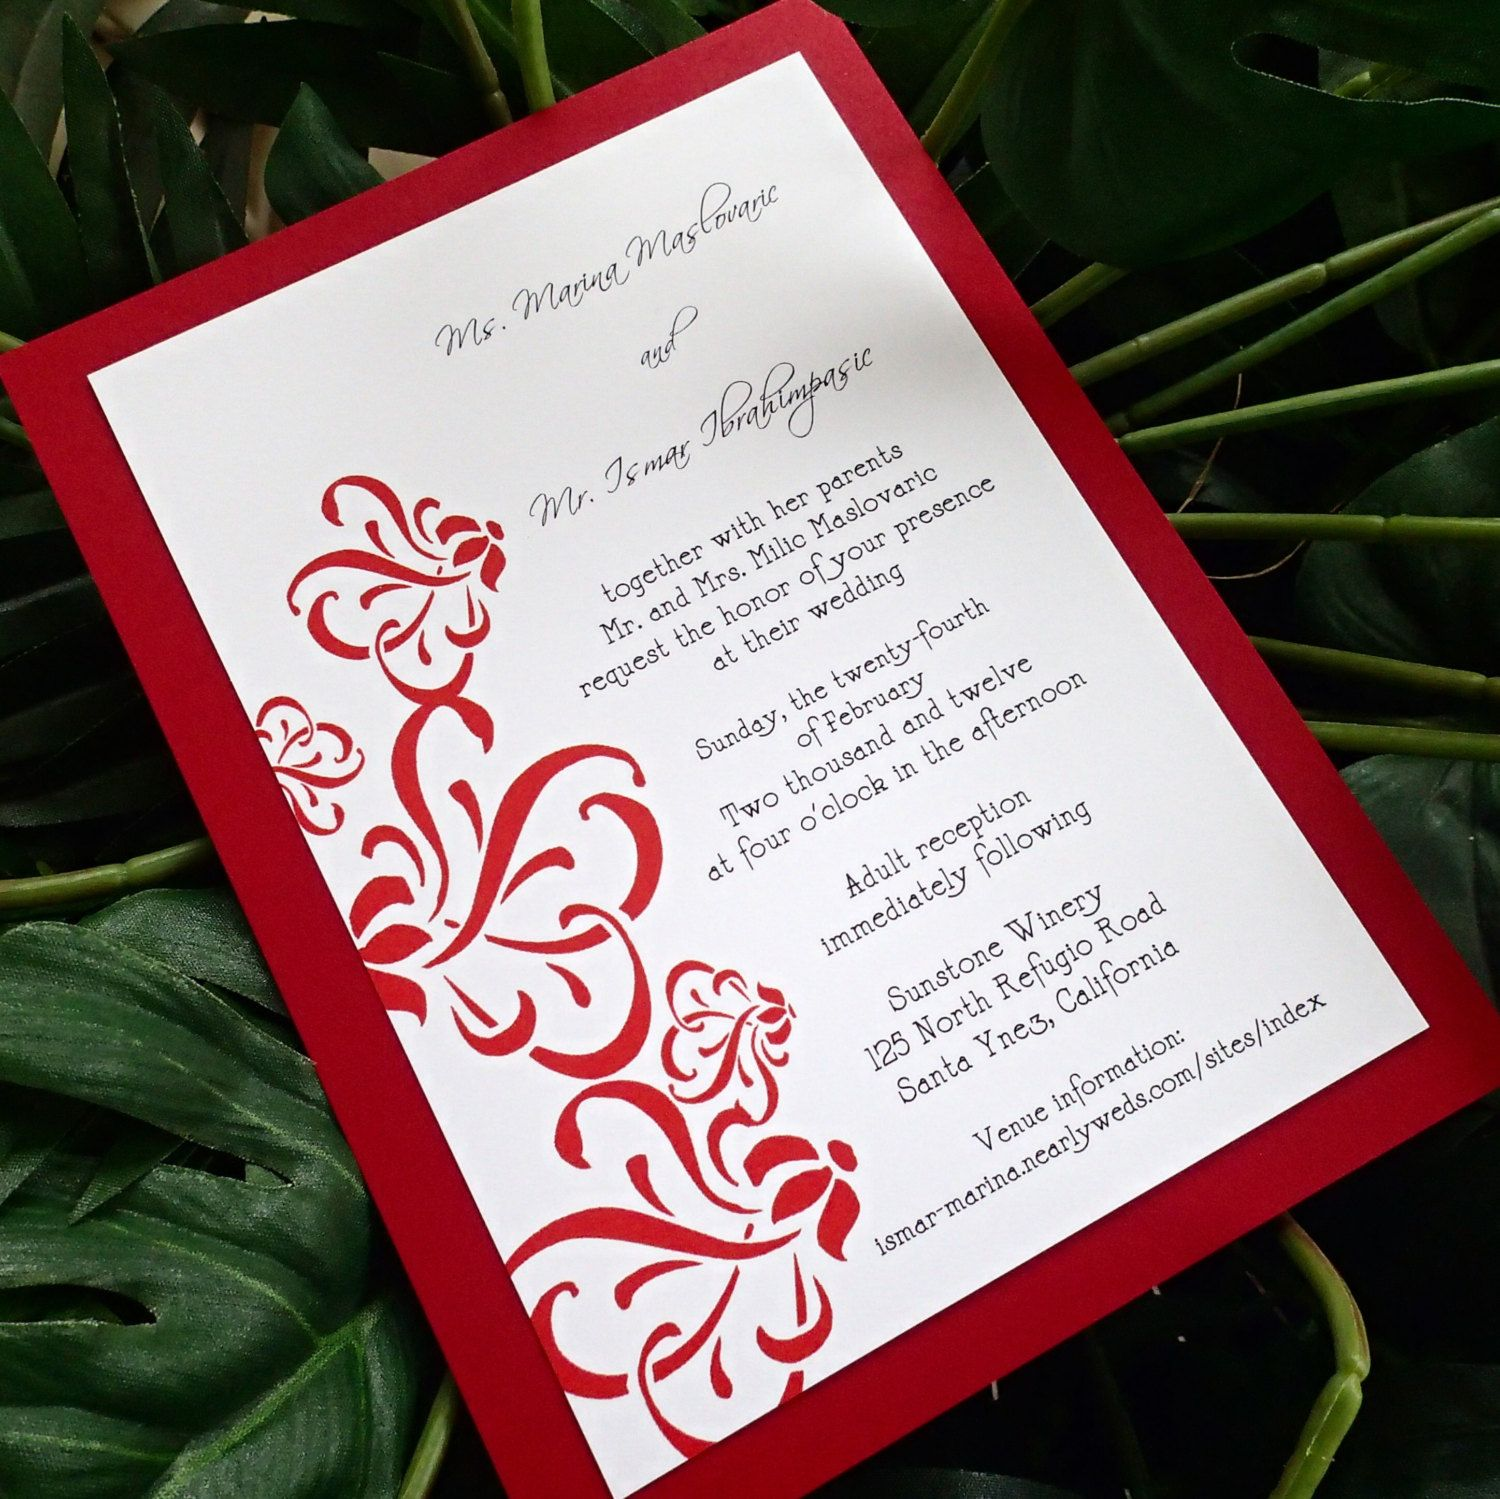 red and white wedding invitation modern wedding invitations flourish wedding invitation damask wedding invitation elegant invitation